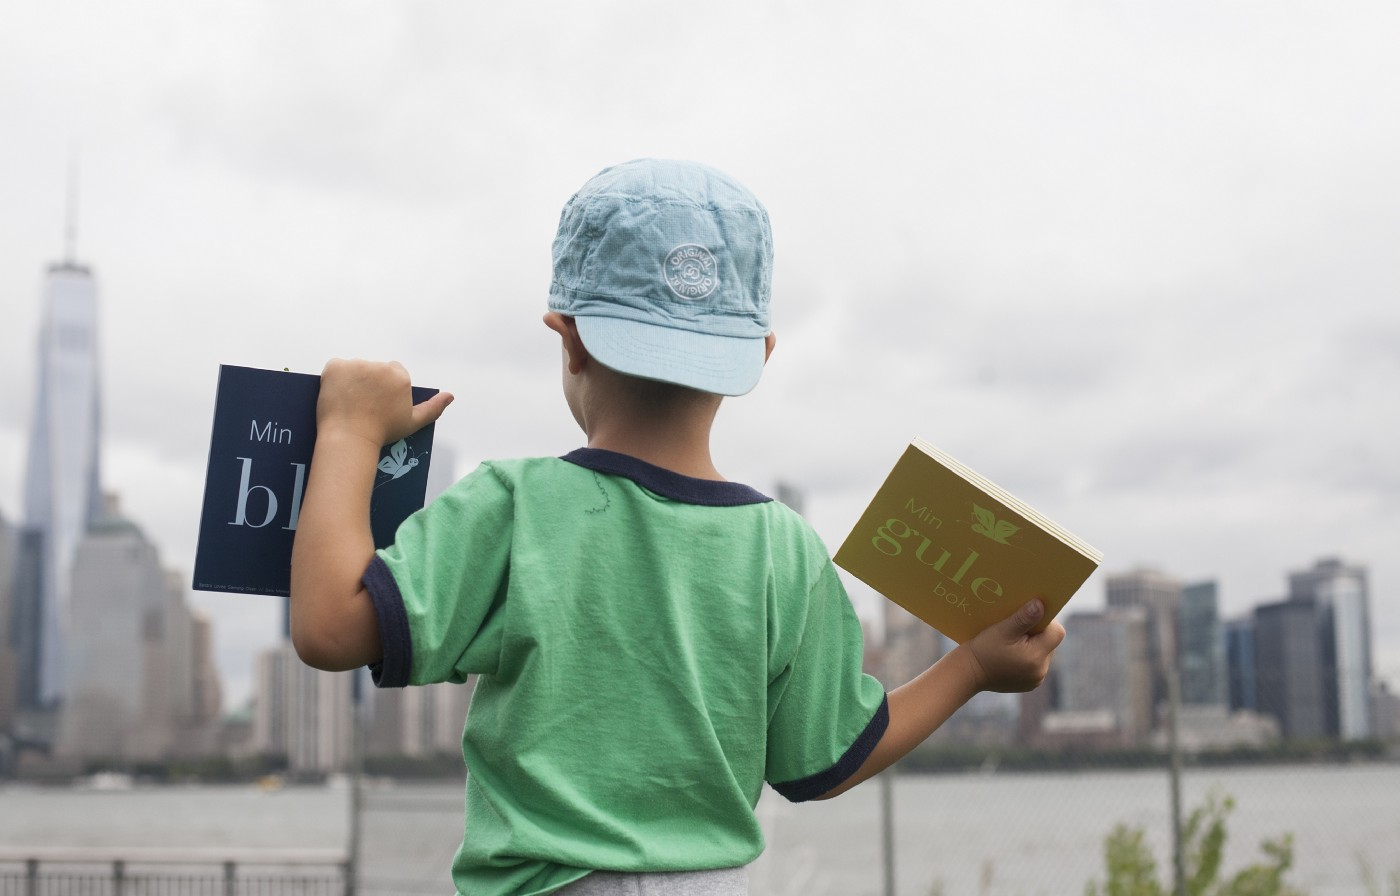 Image of male child holding up books